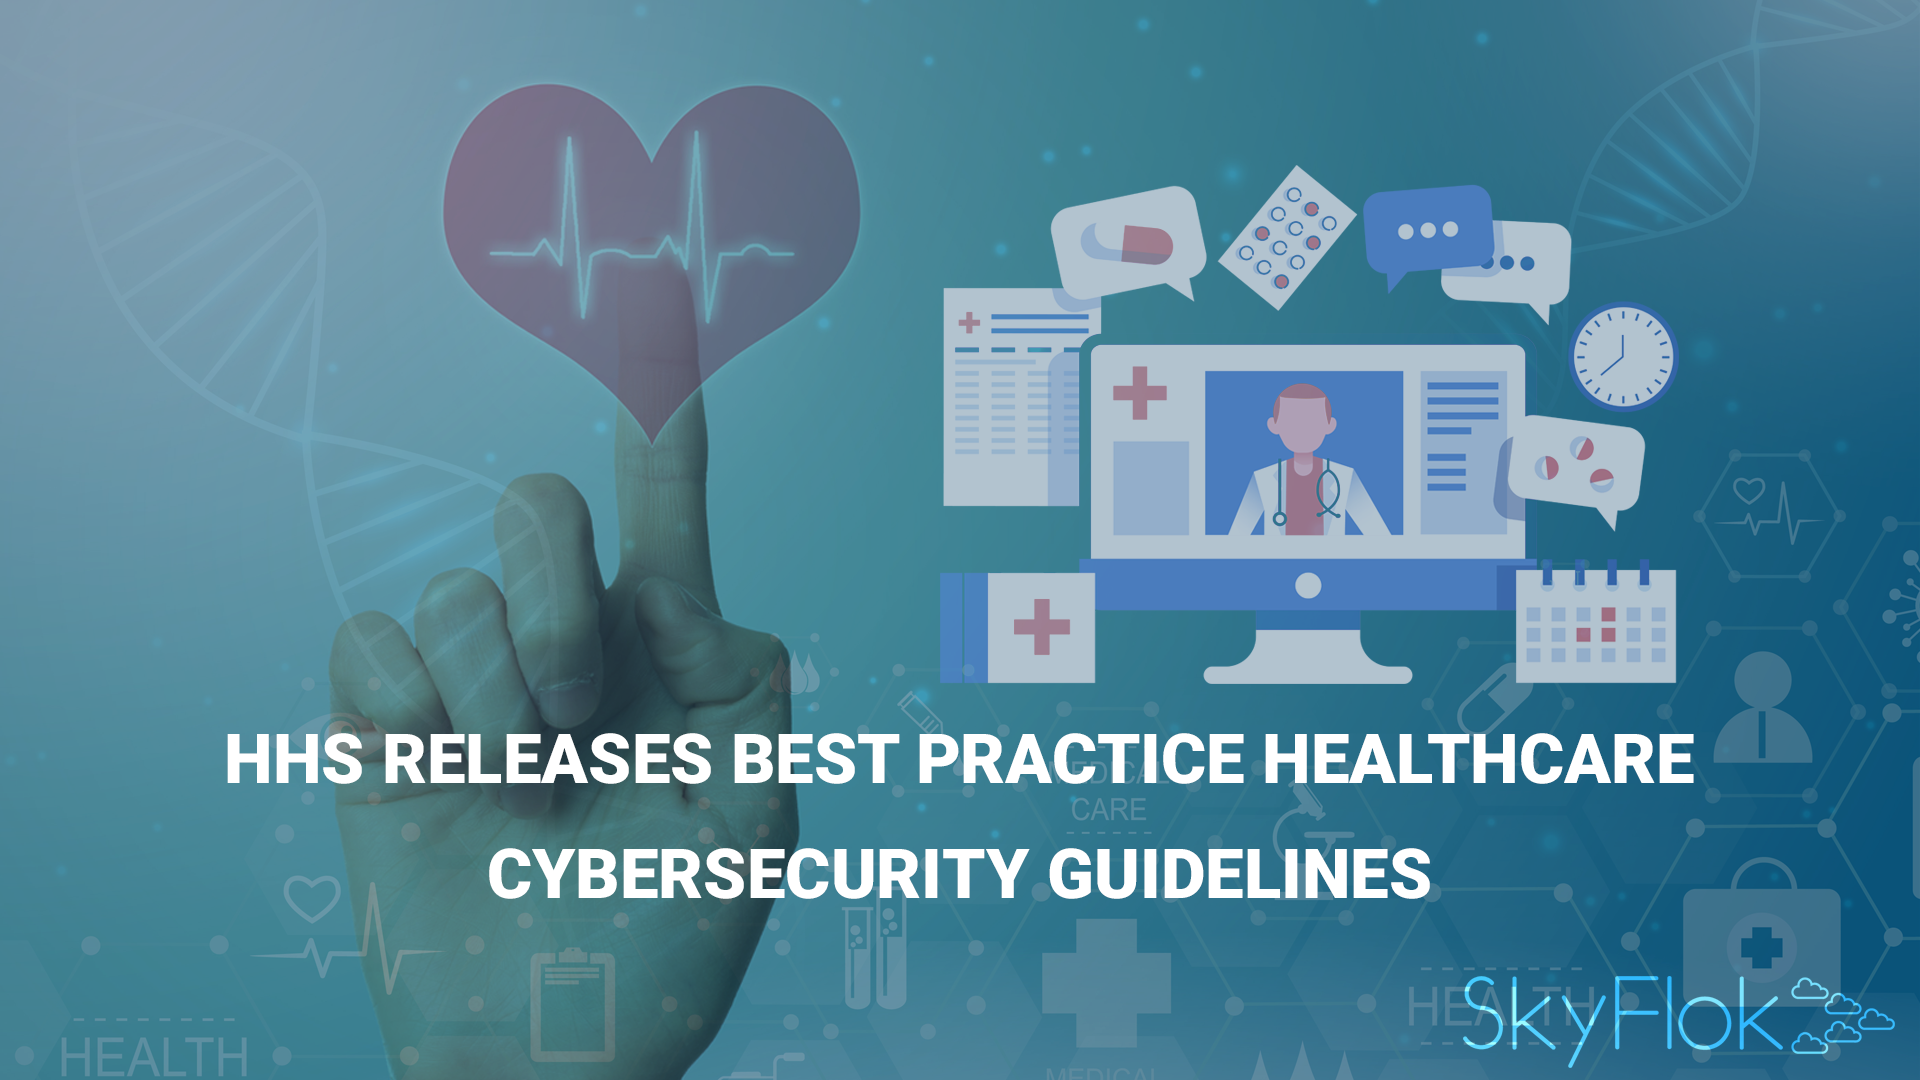 HHS Releases Best Practice Healthcare Cybersecurity Guidelines